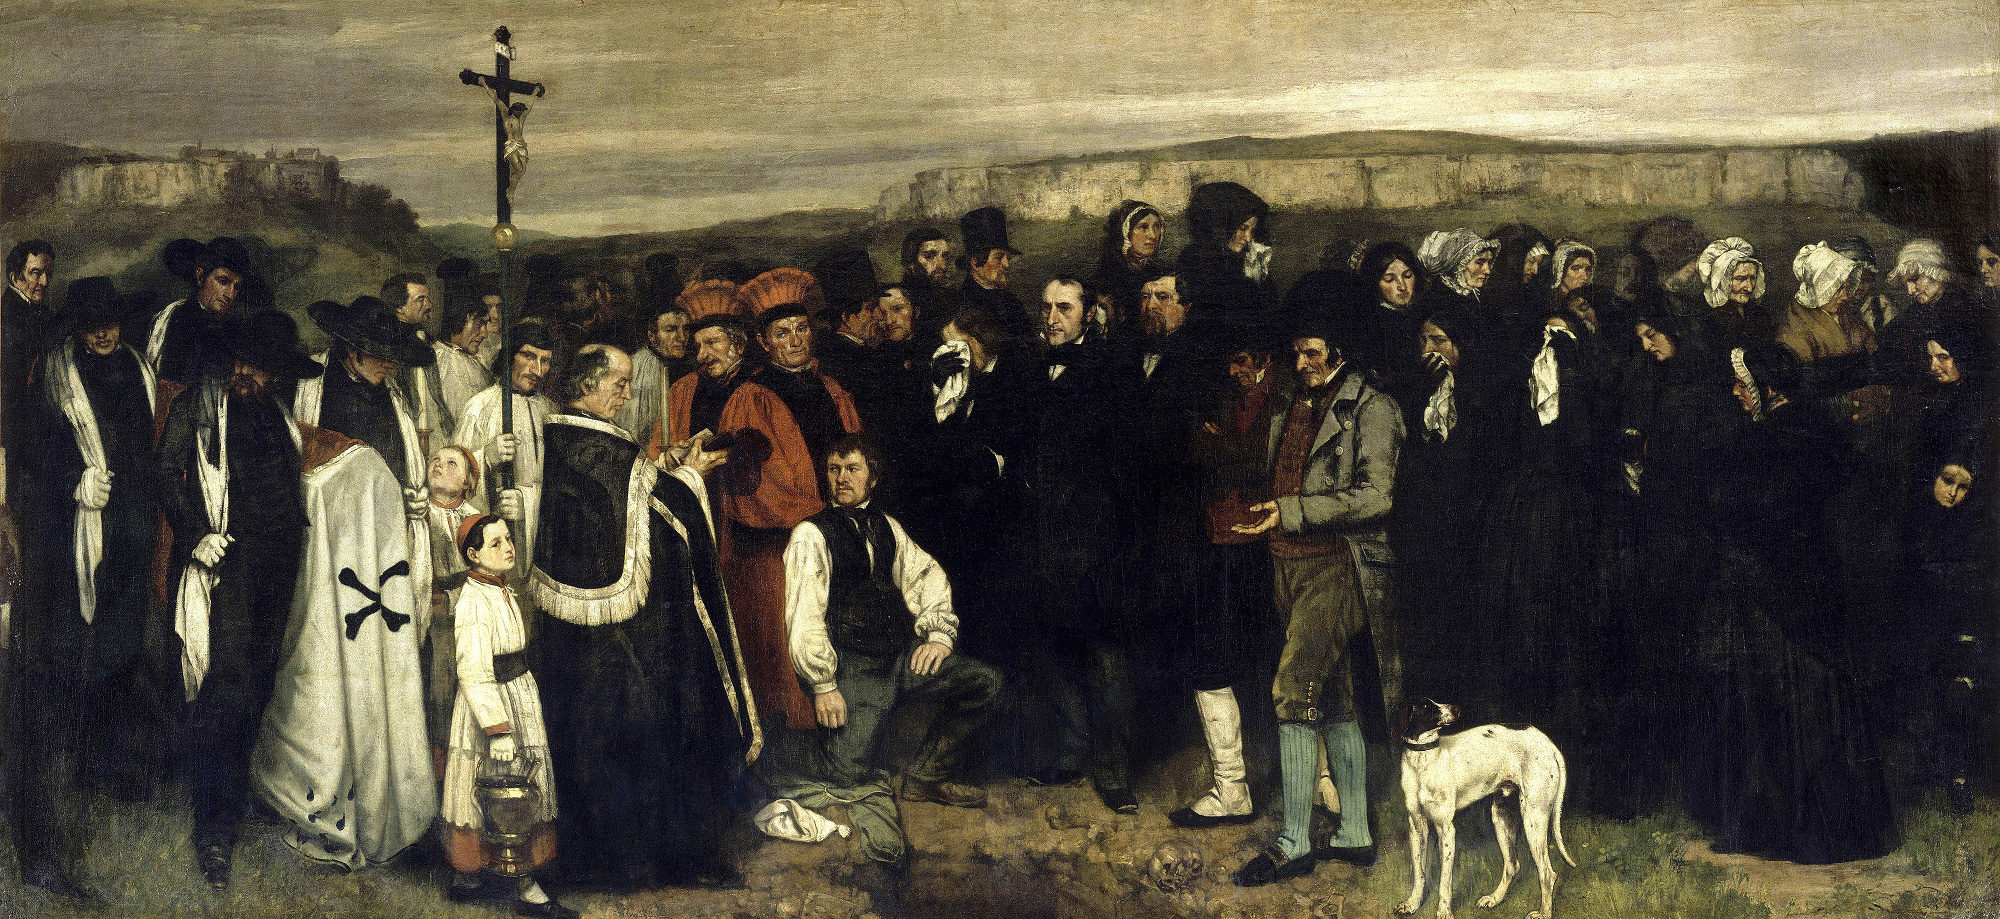 Gustave Courbet, Funerale a Ornans